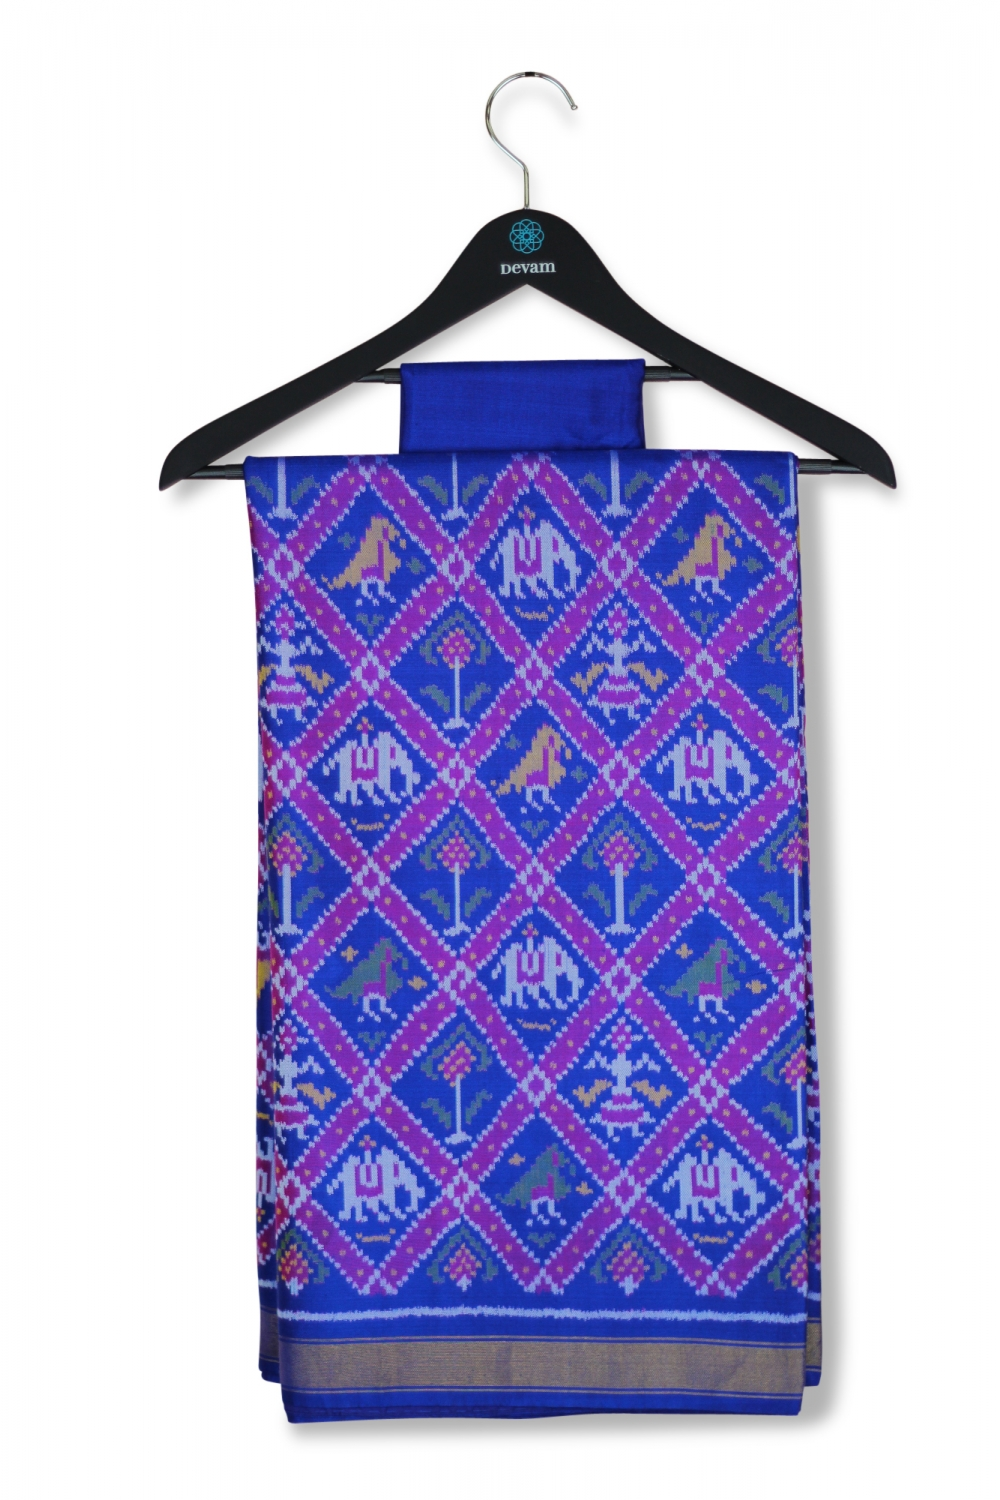 Royal Blue Nari Kunjar Single Ikkat Patan Style Silk Patola Saree